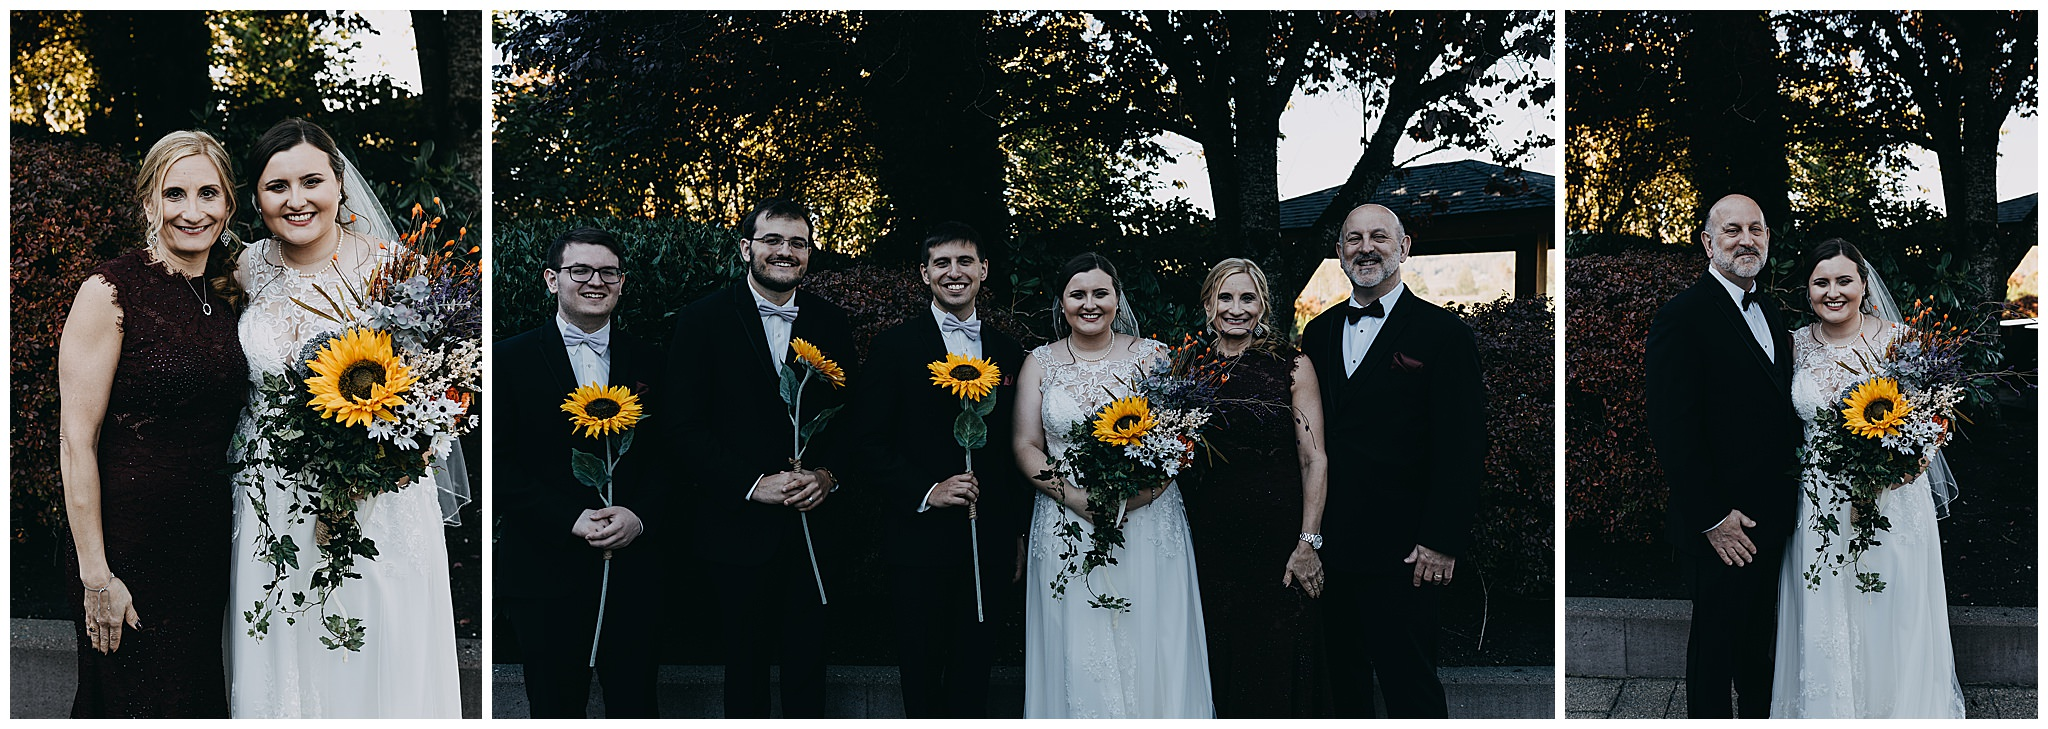 lord-hill-farms-wedding-rachel-kelsey81.jpg